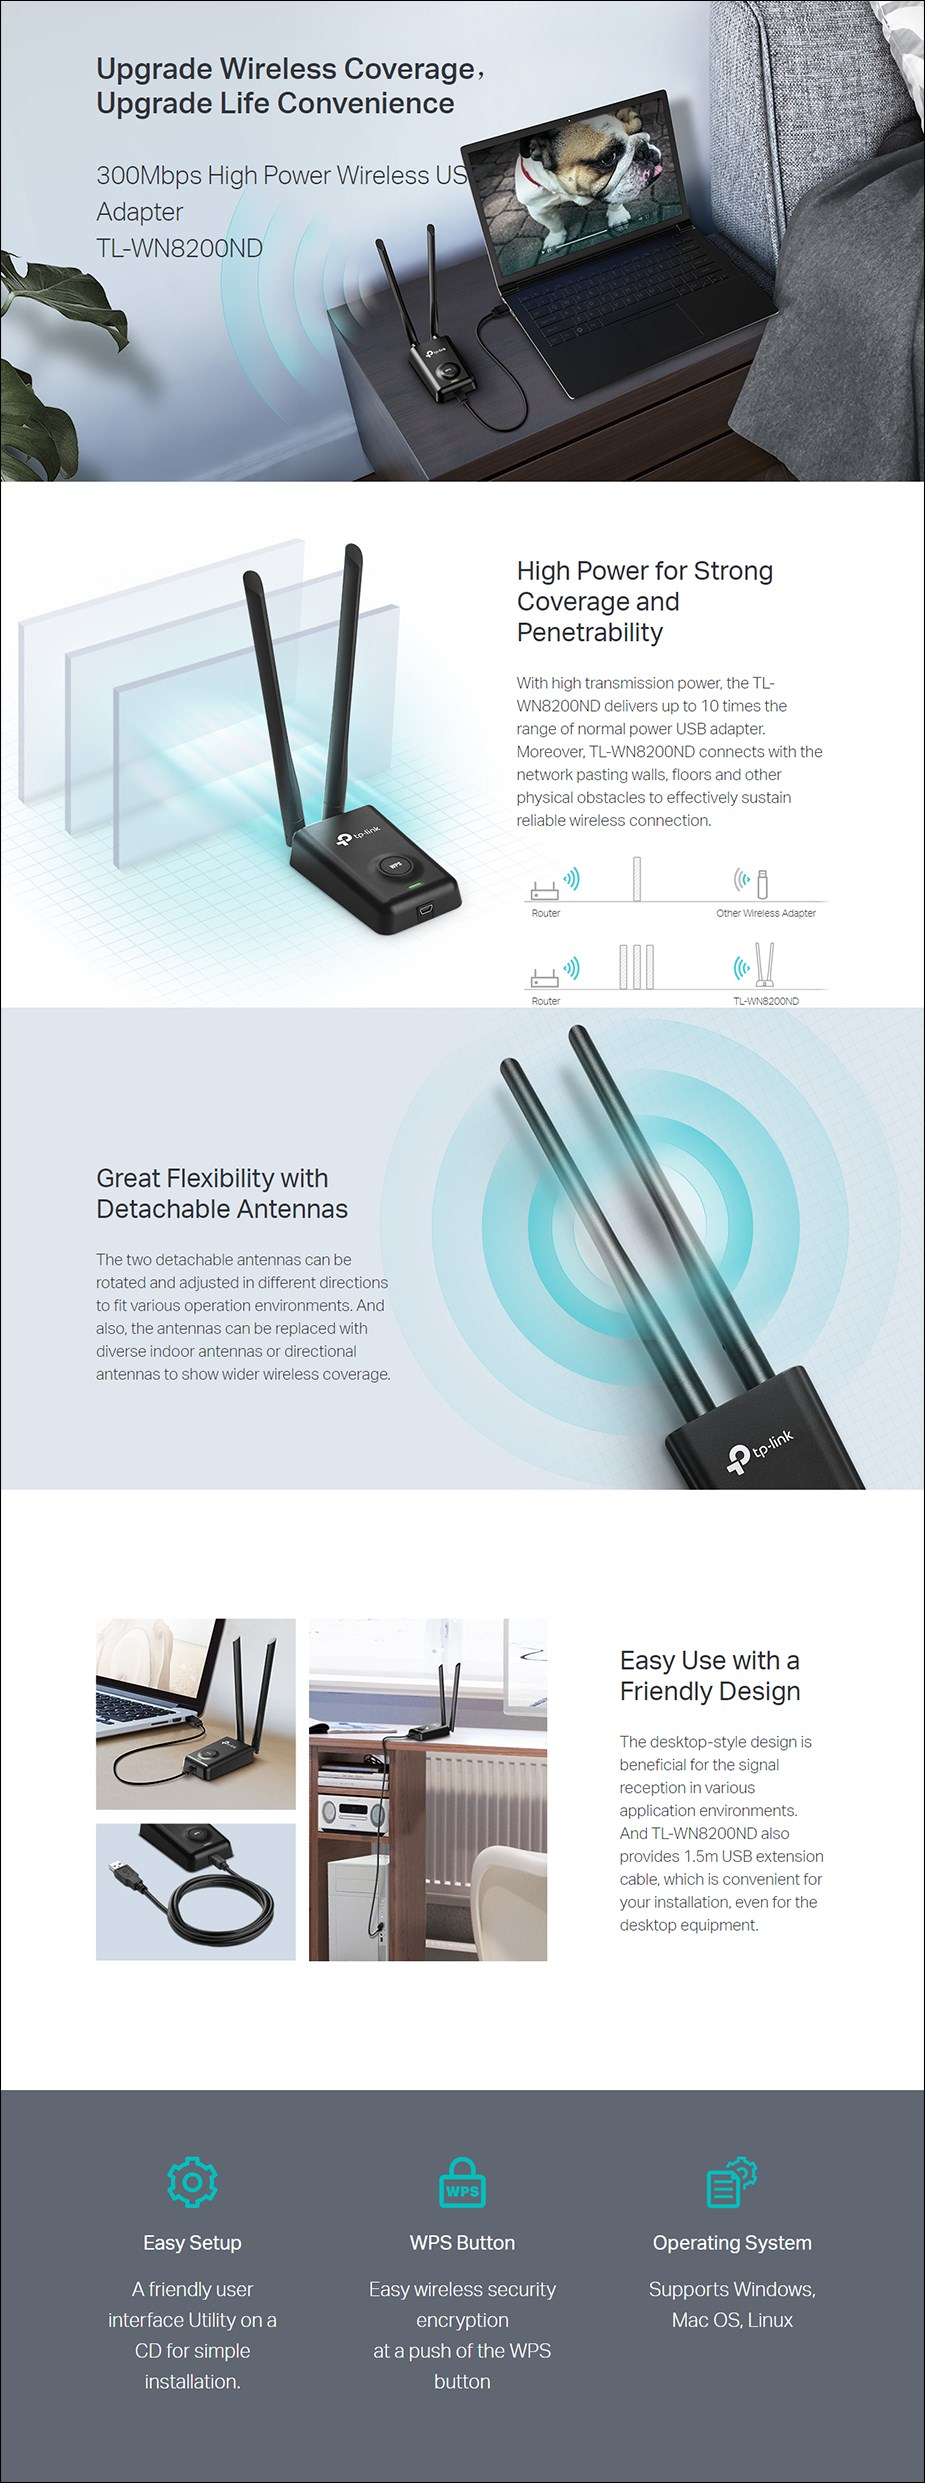 TP-Link TL-WN8200ND 300Mbps High Power Wireless USB Adapter with 5dBi Antenna - Overview 1